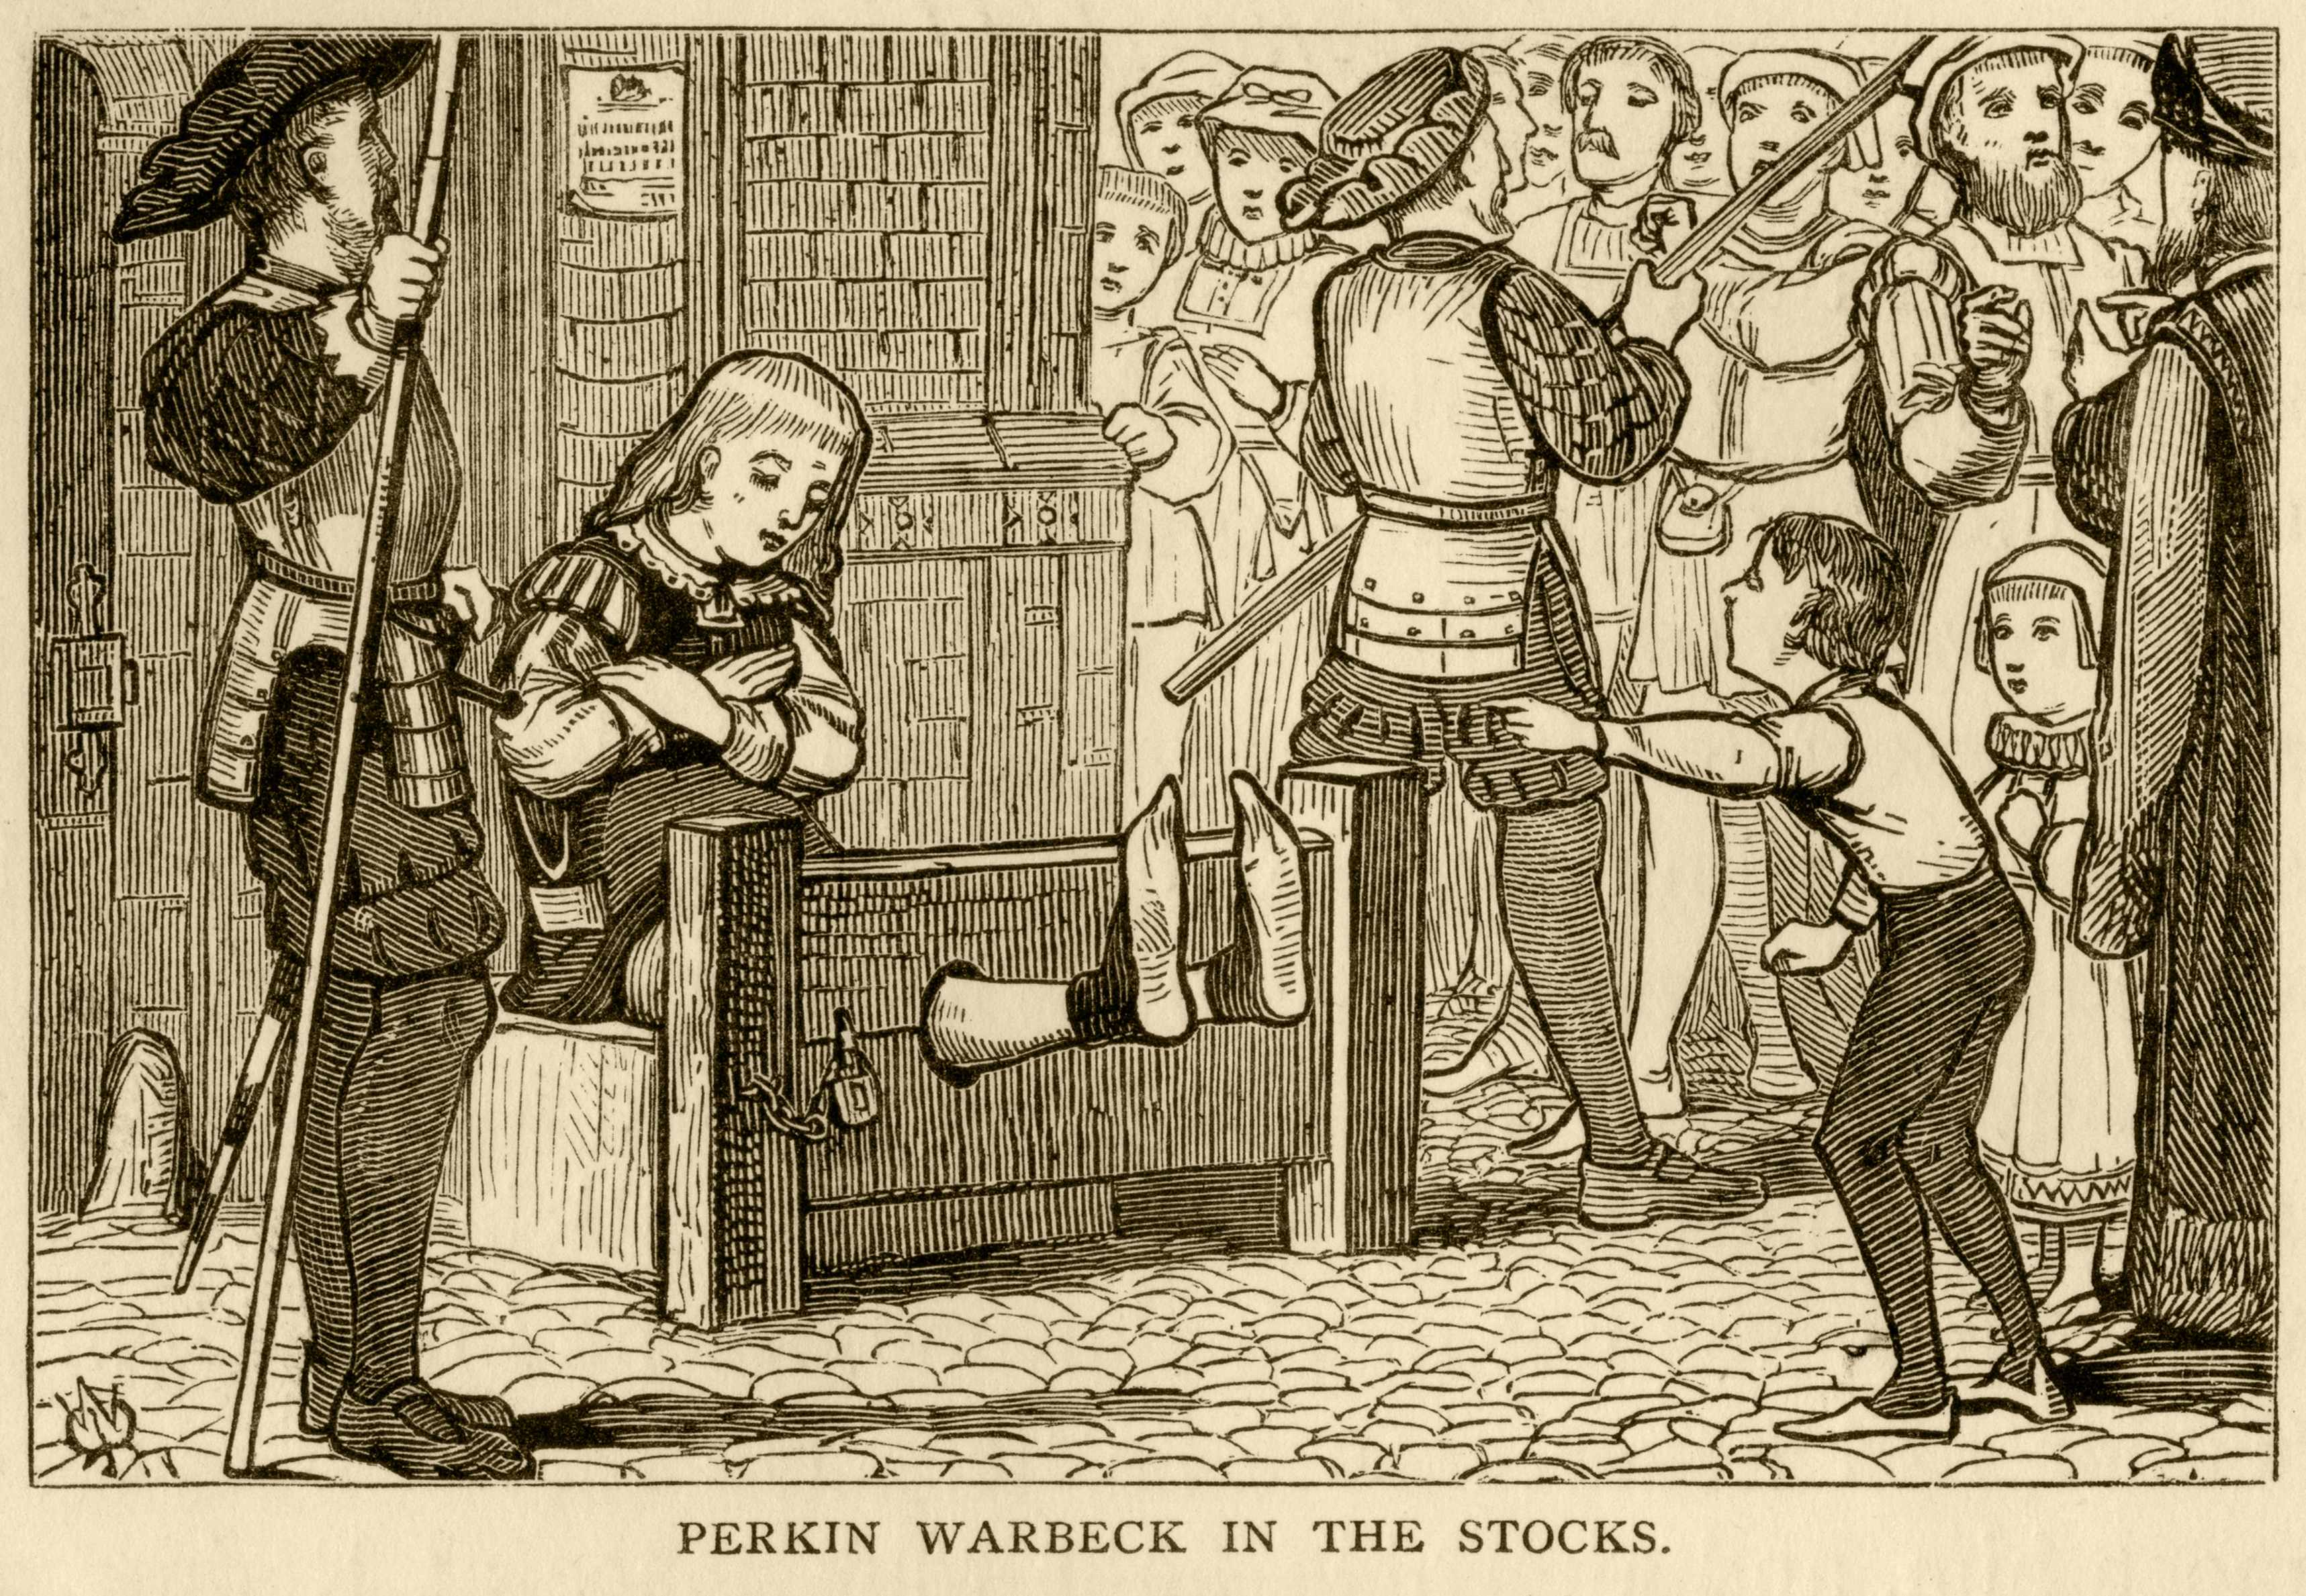 Perkin Warbeck, an imposter and pretender to the English throne, being humiliated in the stocks before his execution in 1499. Warbeck was used by Henry VII's Yorkist enemies in an unsuccessful plot to threaten the new Tudor dynasty. (Getty Images)